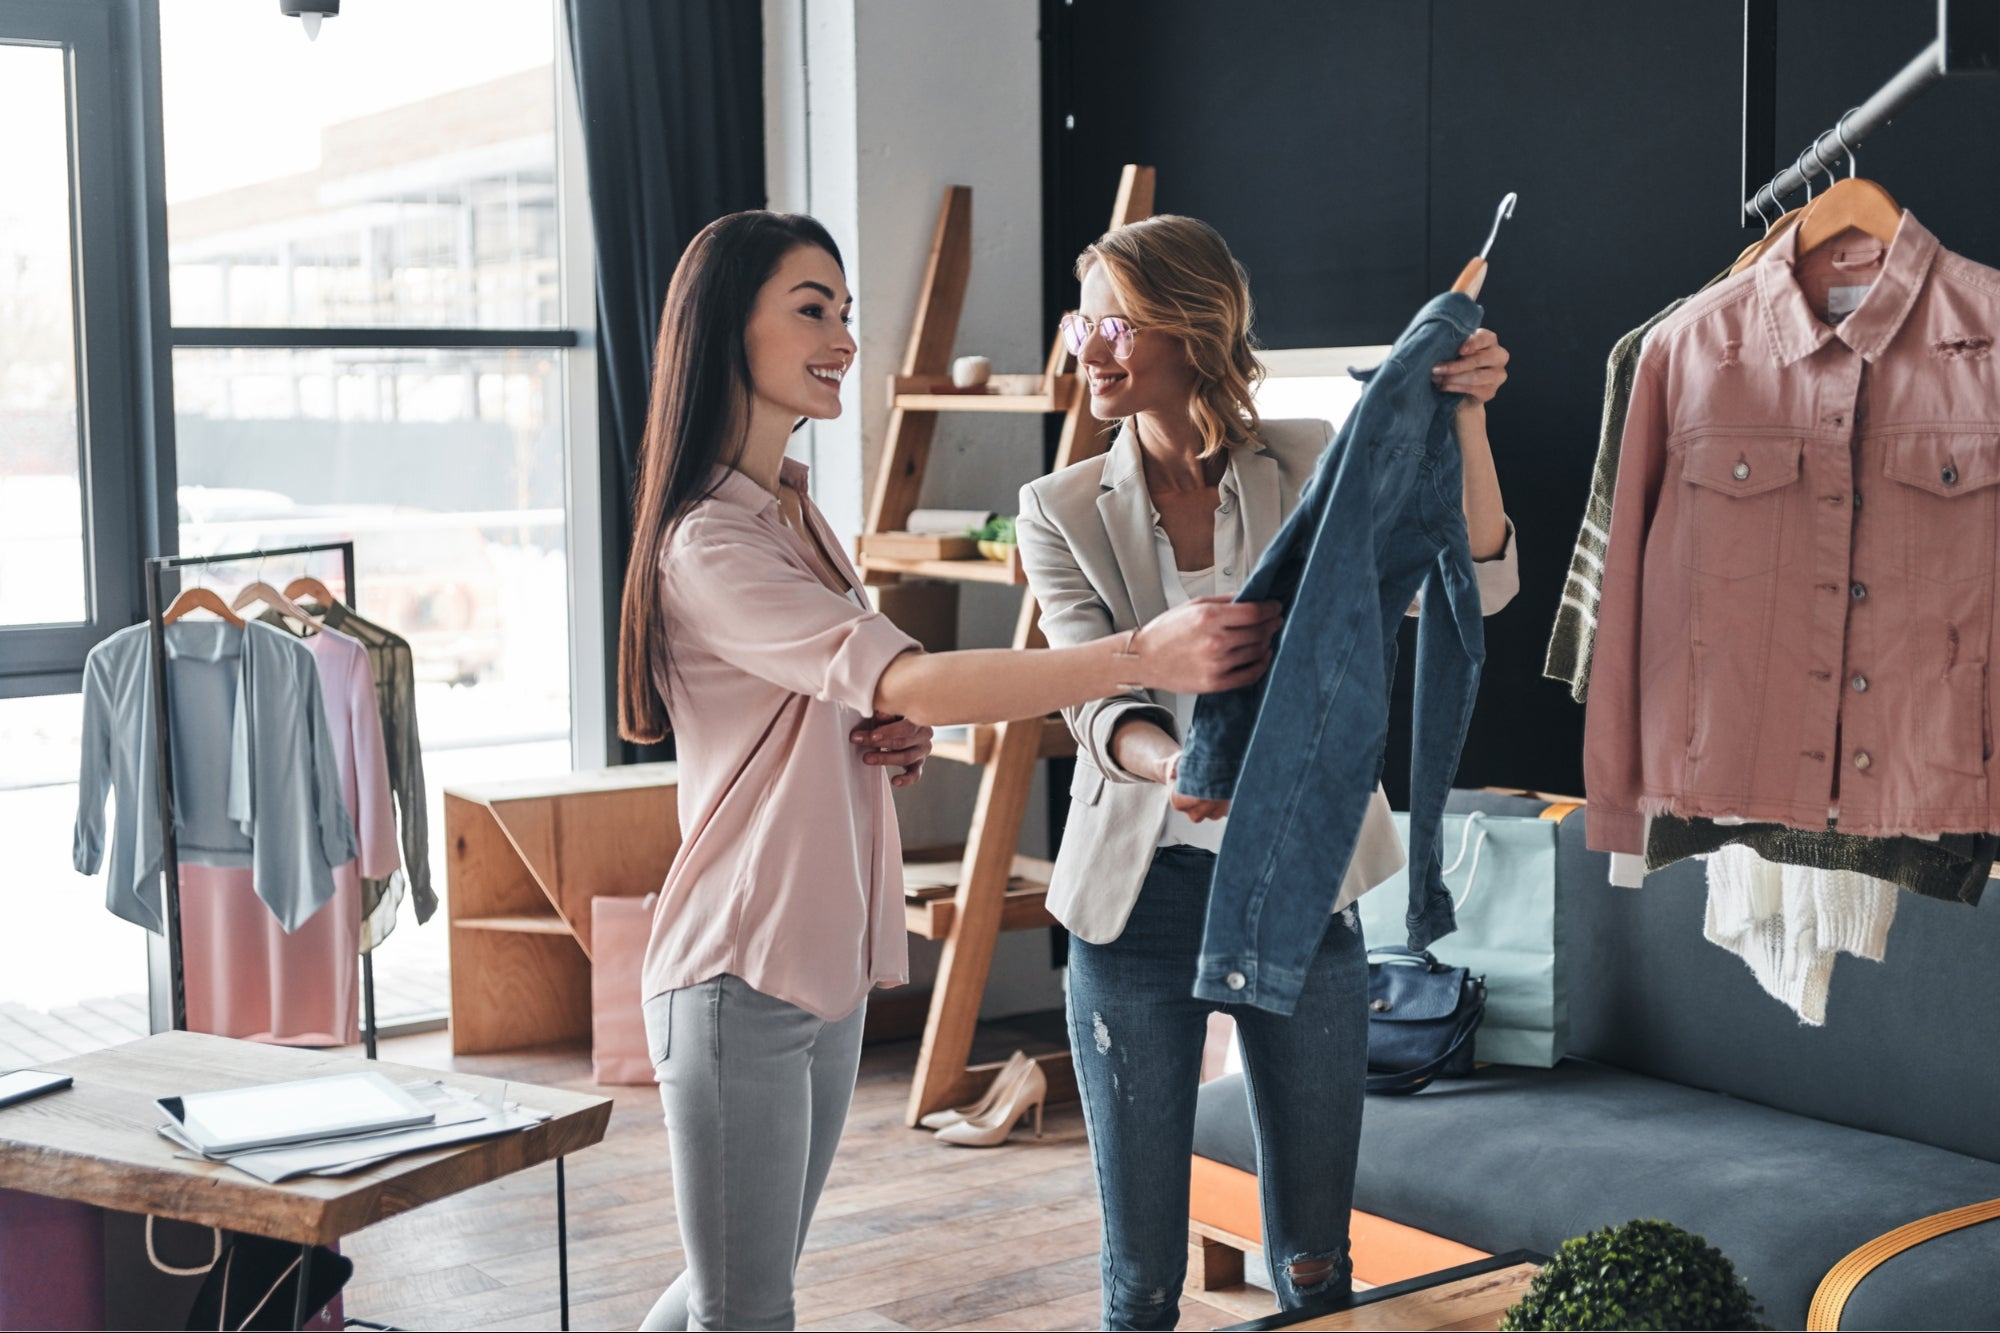 How to Start a Clothing Business: A Step-by-Step Guide